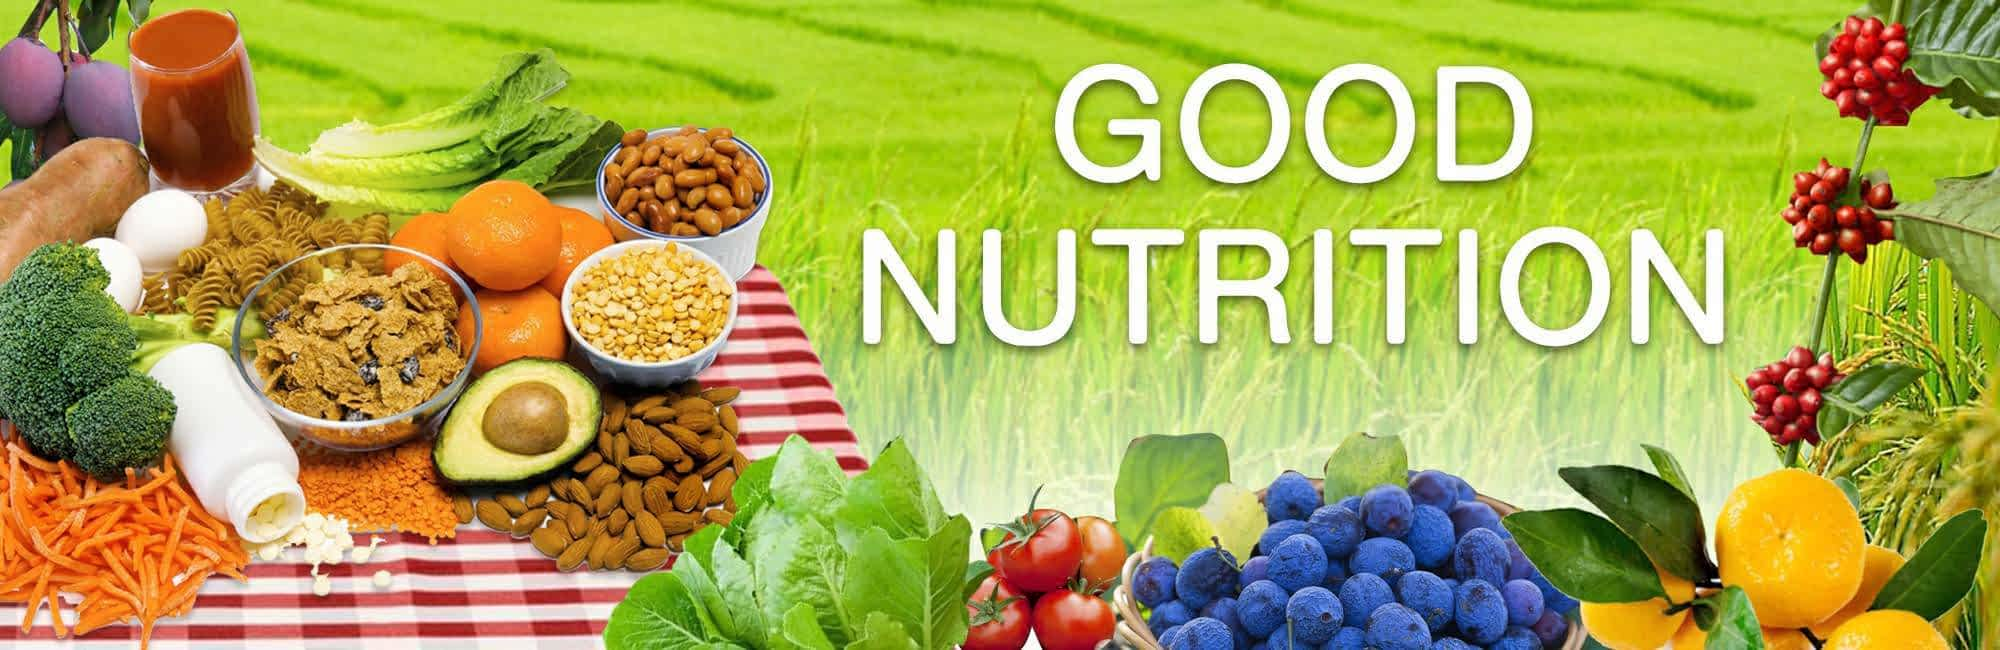 good nutrition is one of the most important parts of a